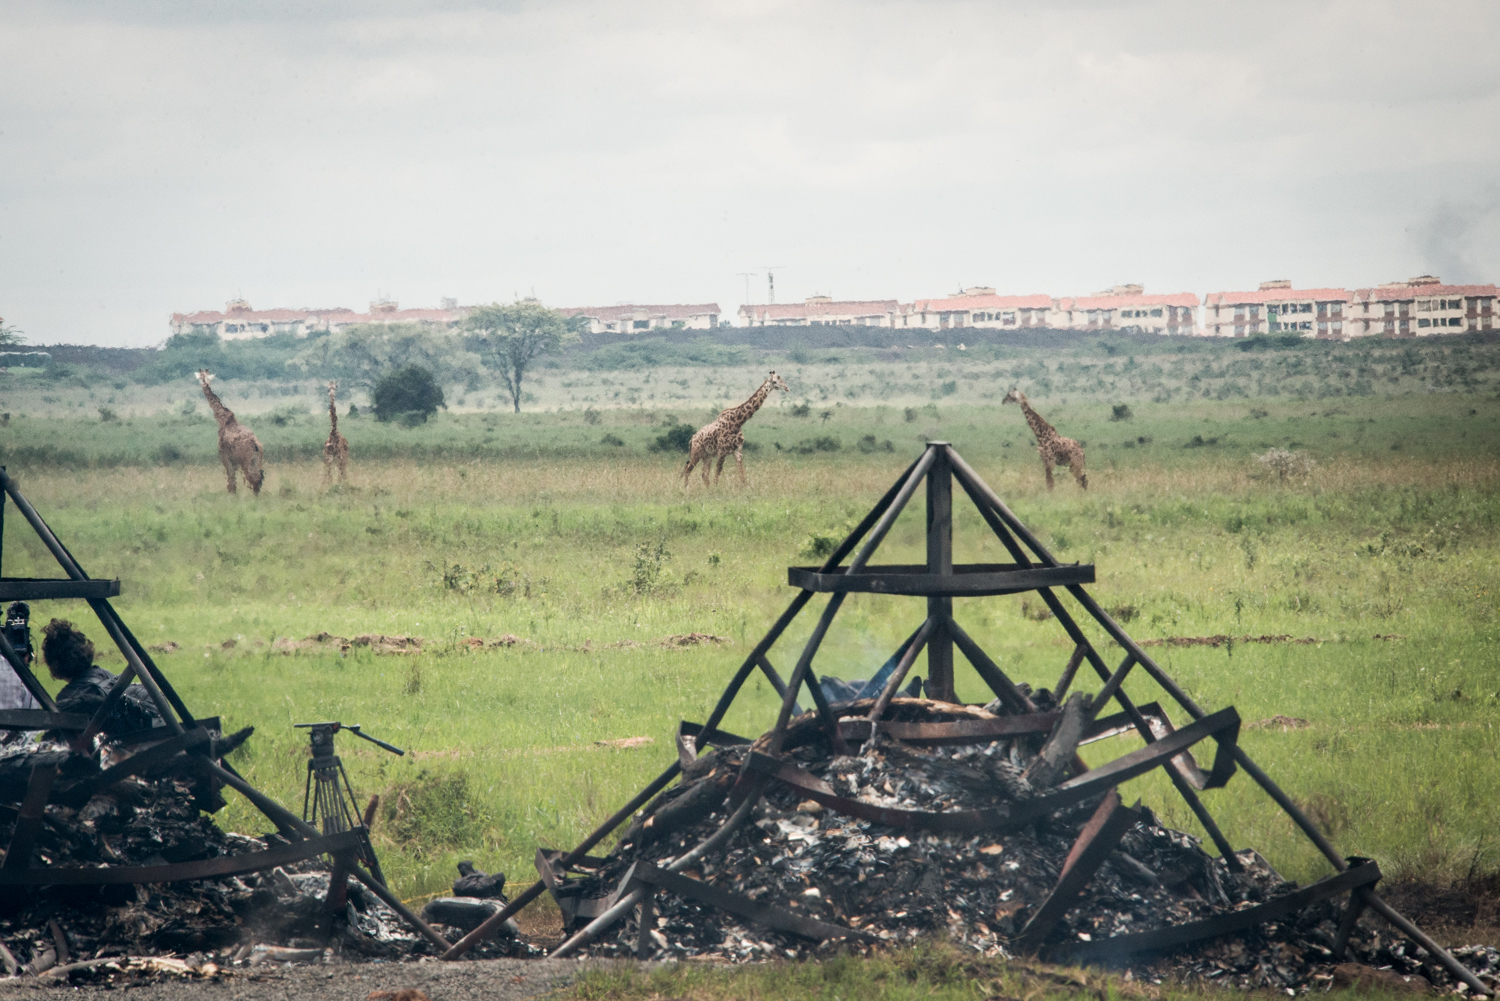 A herd of giraffes walk by the scene of the burn. The previous night, lions grabbed a burnt crocodile skin, which was discovered later that morning some distance away. Photo by Mia Collis for the Kenya Wildlife Service